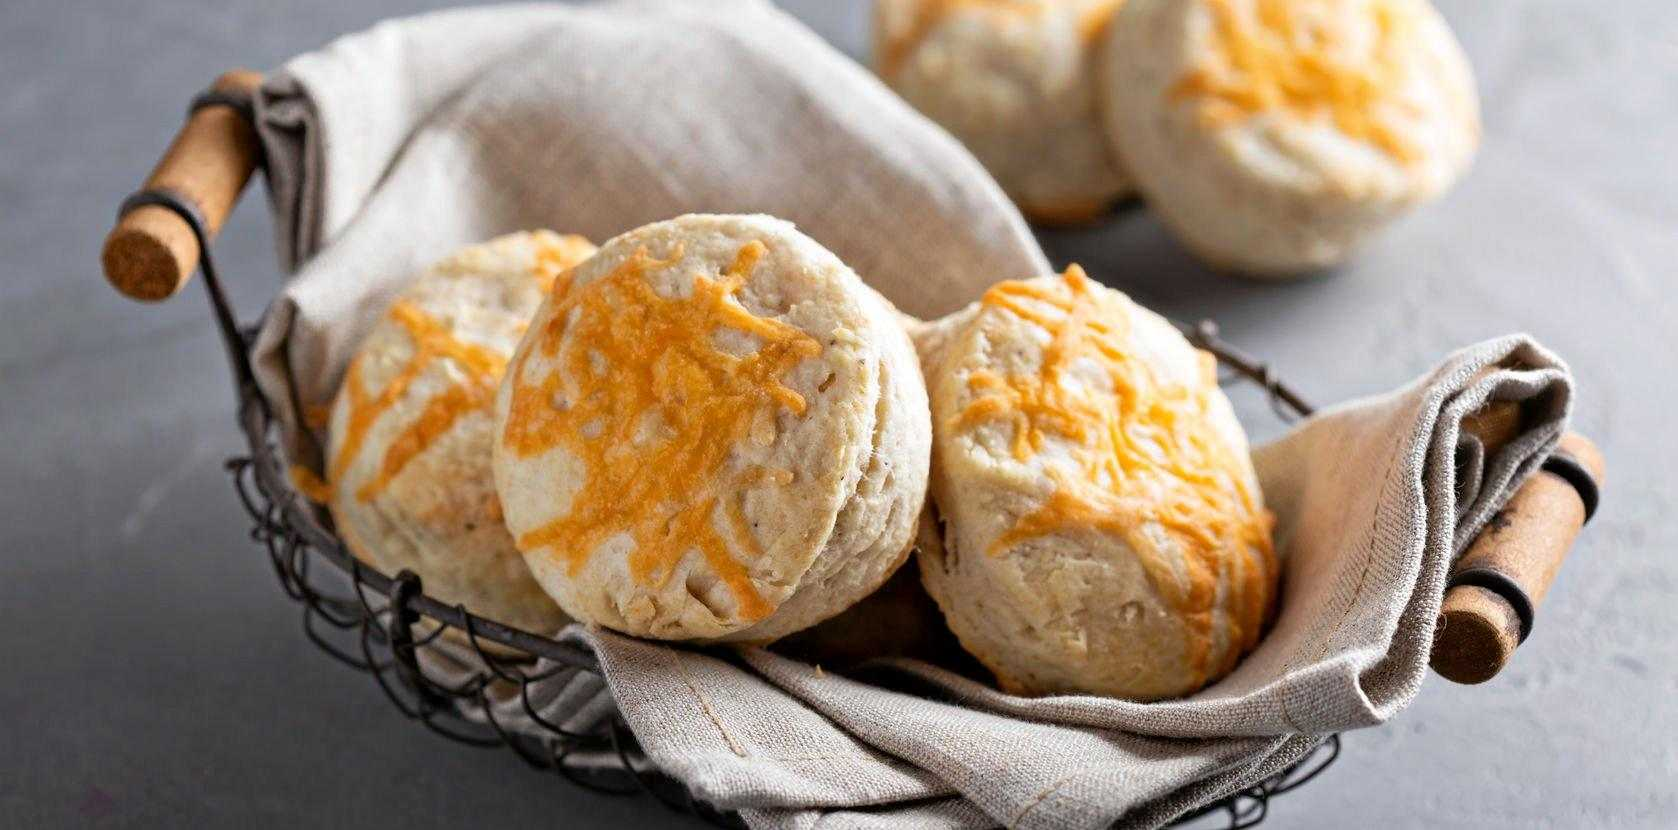 Golden savoury cheese scones are a lunchtime treat from New Zealand.